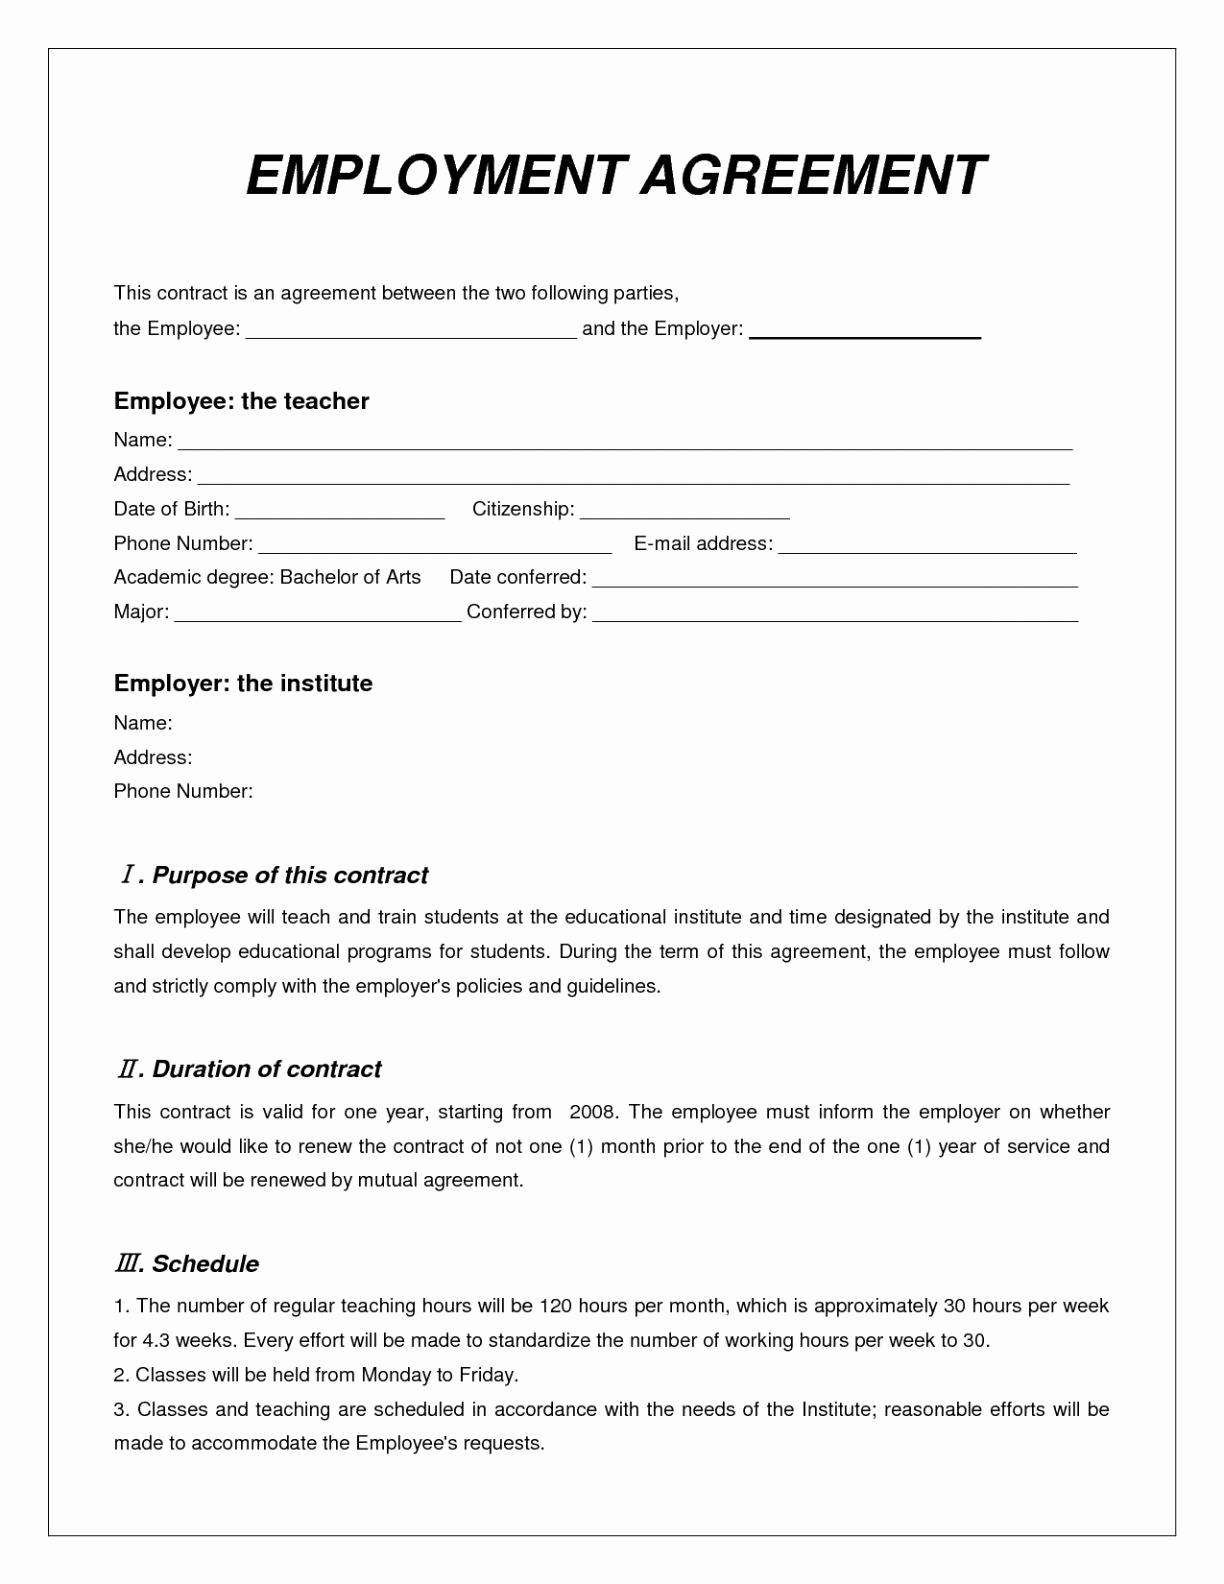 Loan Agreement With Collateral Template